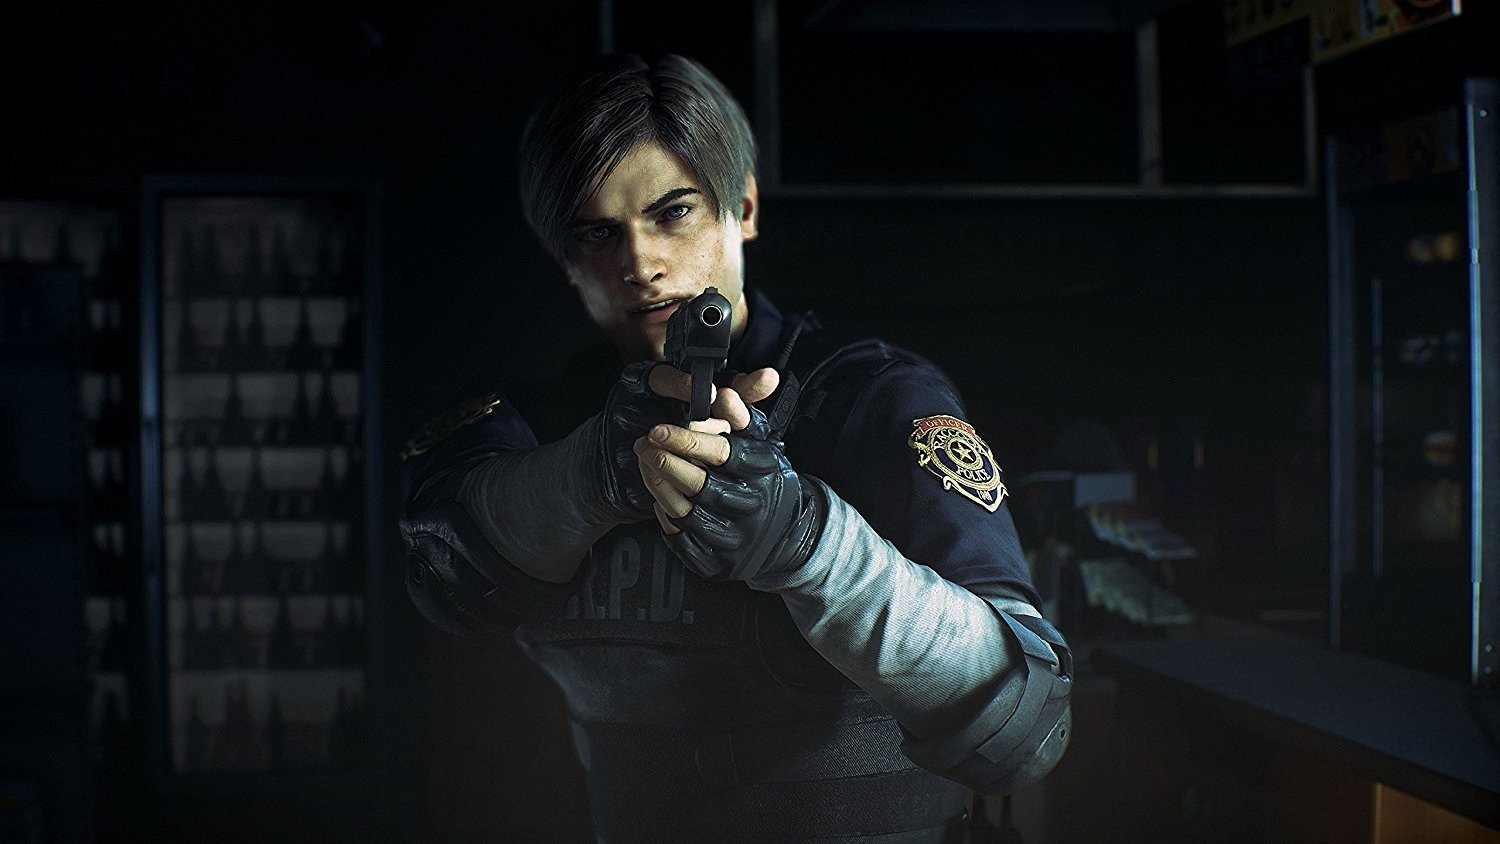 Resident Evil 2 Remake demo is a limited time offer